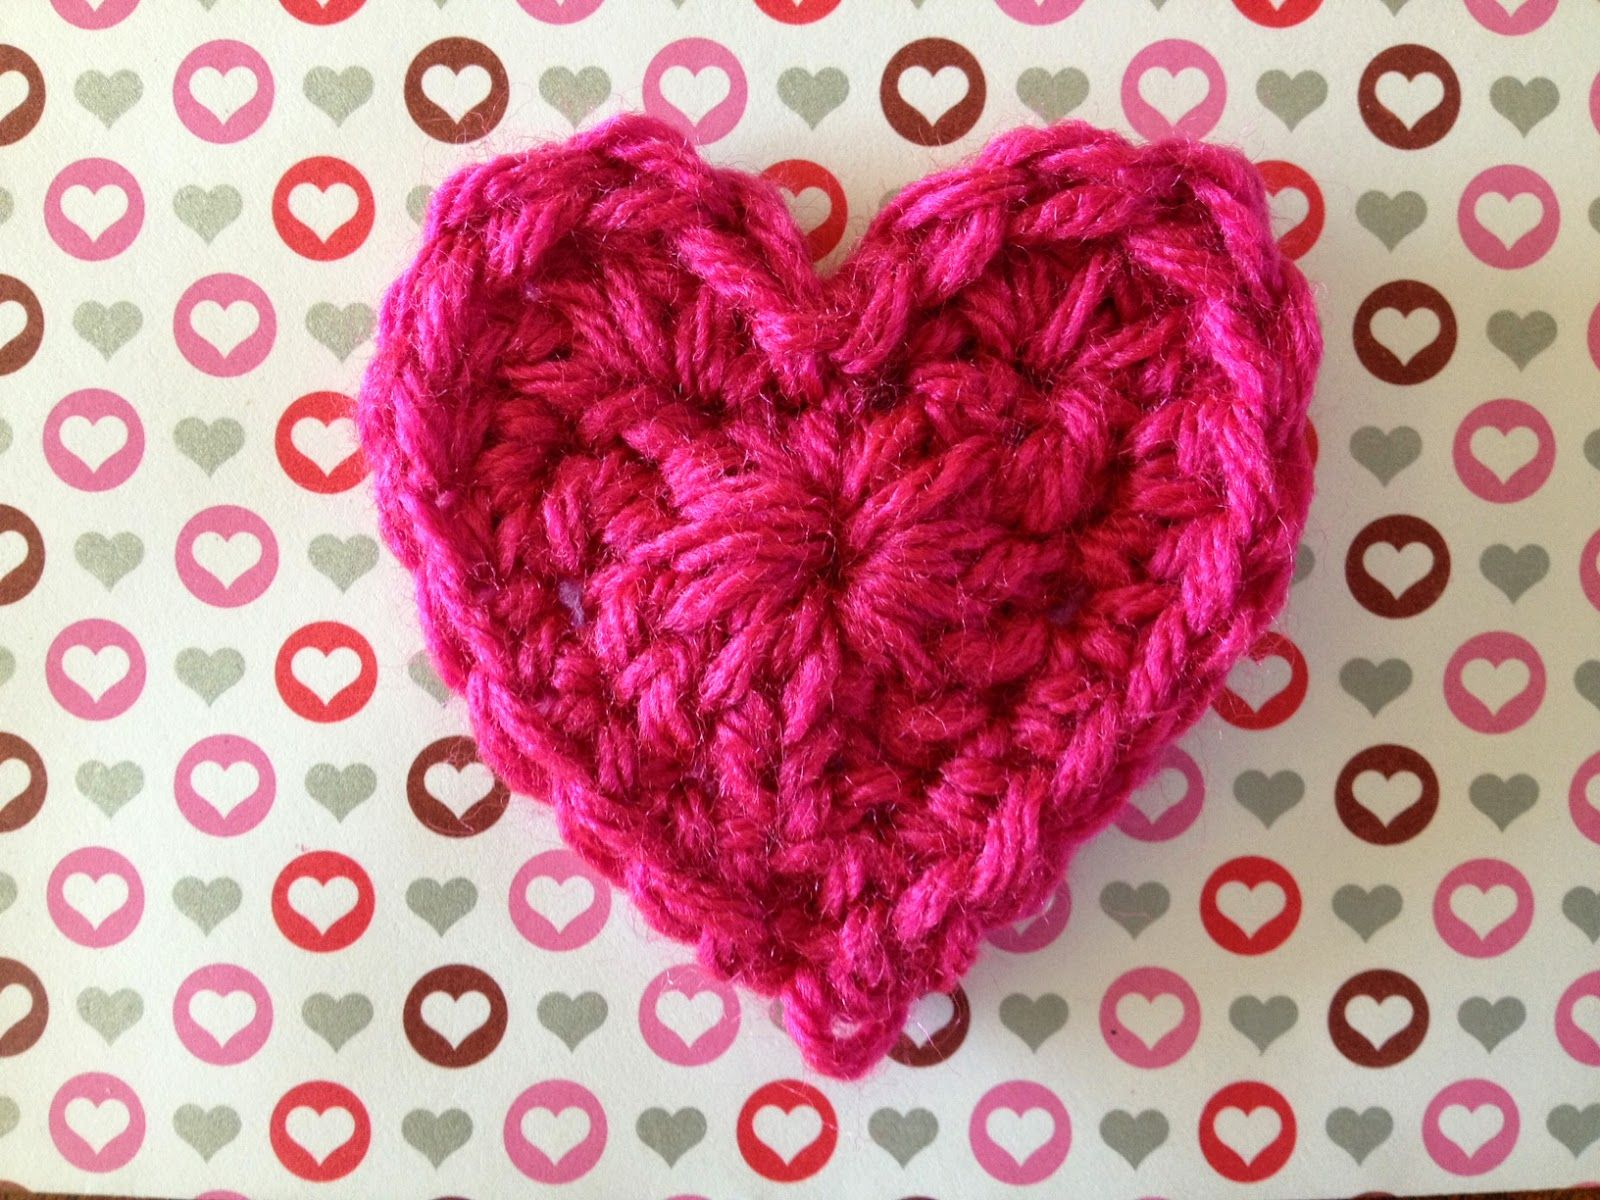 The florida crochet garden sending love with crochet hearts the florida crochet garden sending love with crochet hearts easy crochet patternscrochet bankloansurffo Images